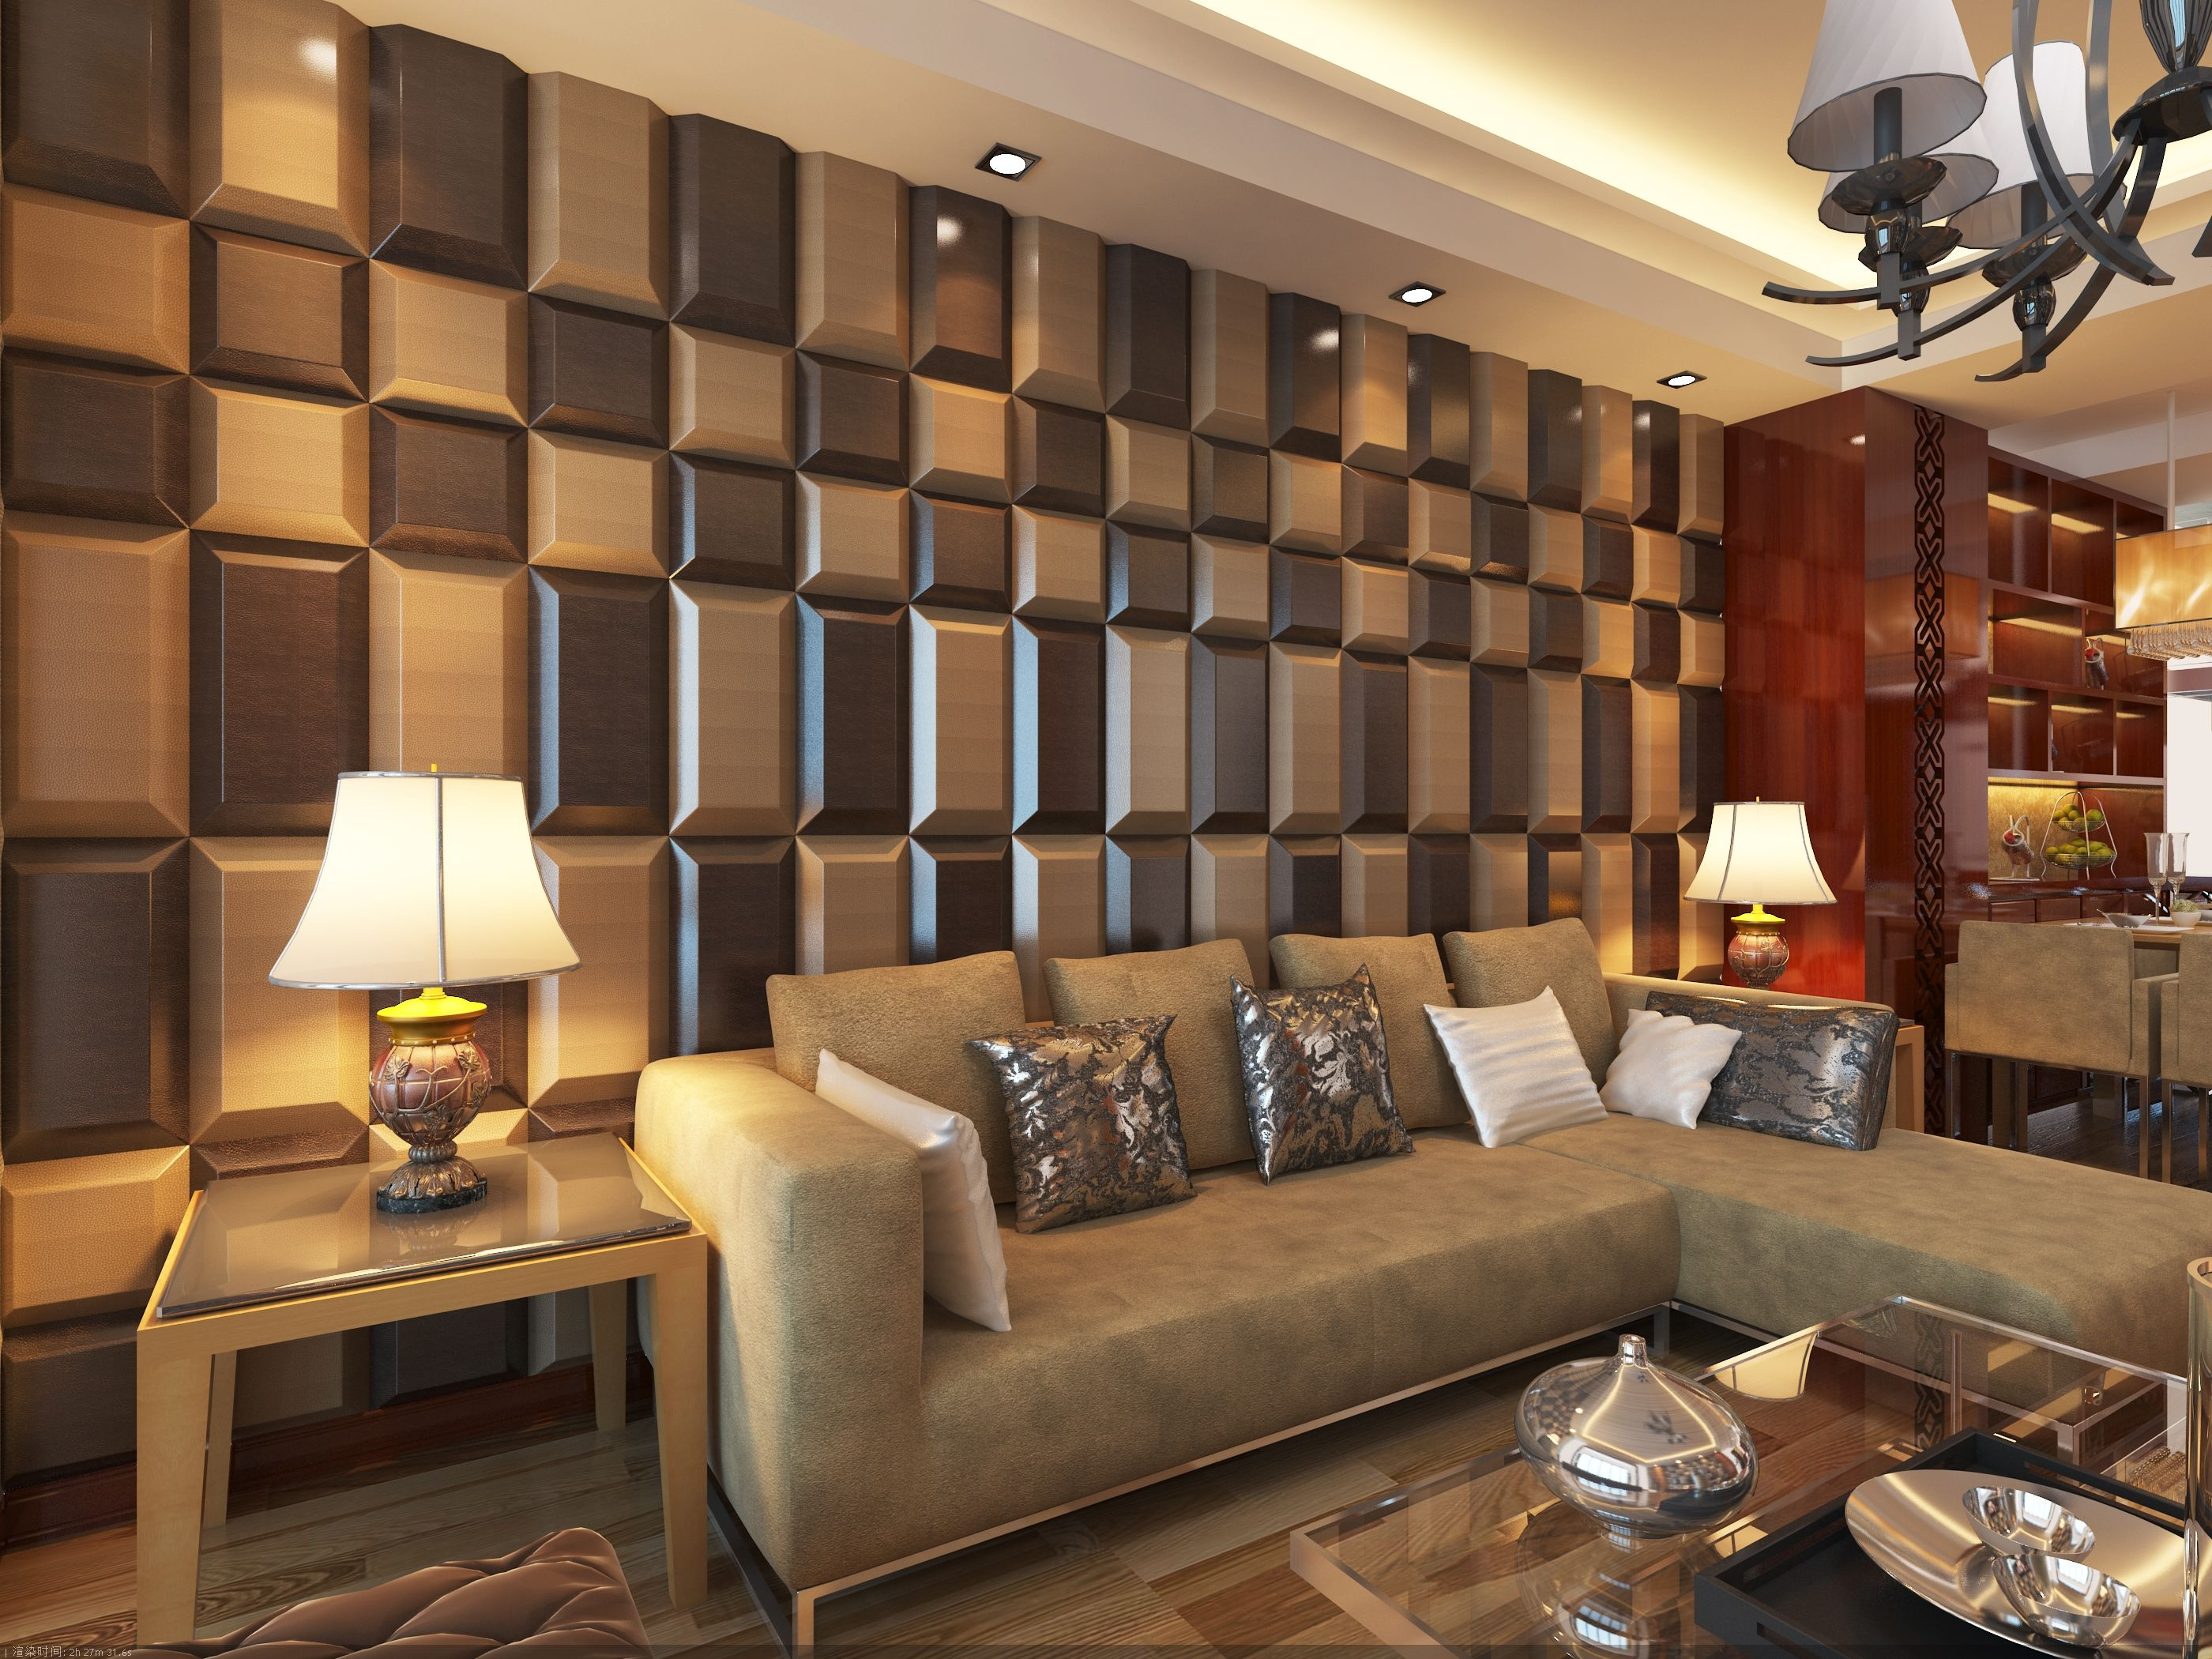 Kajaria Wall Tiles Design For Living Room Http Club Maraton Com